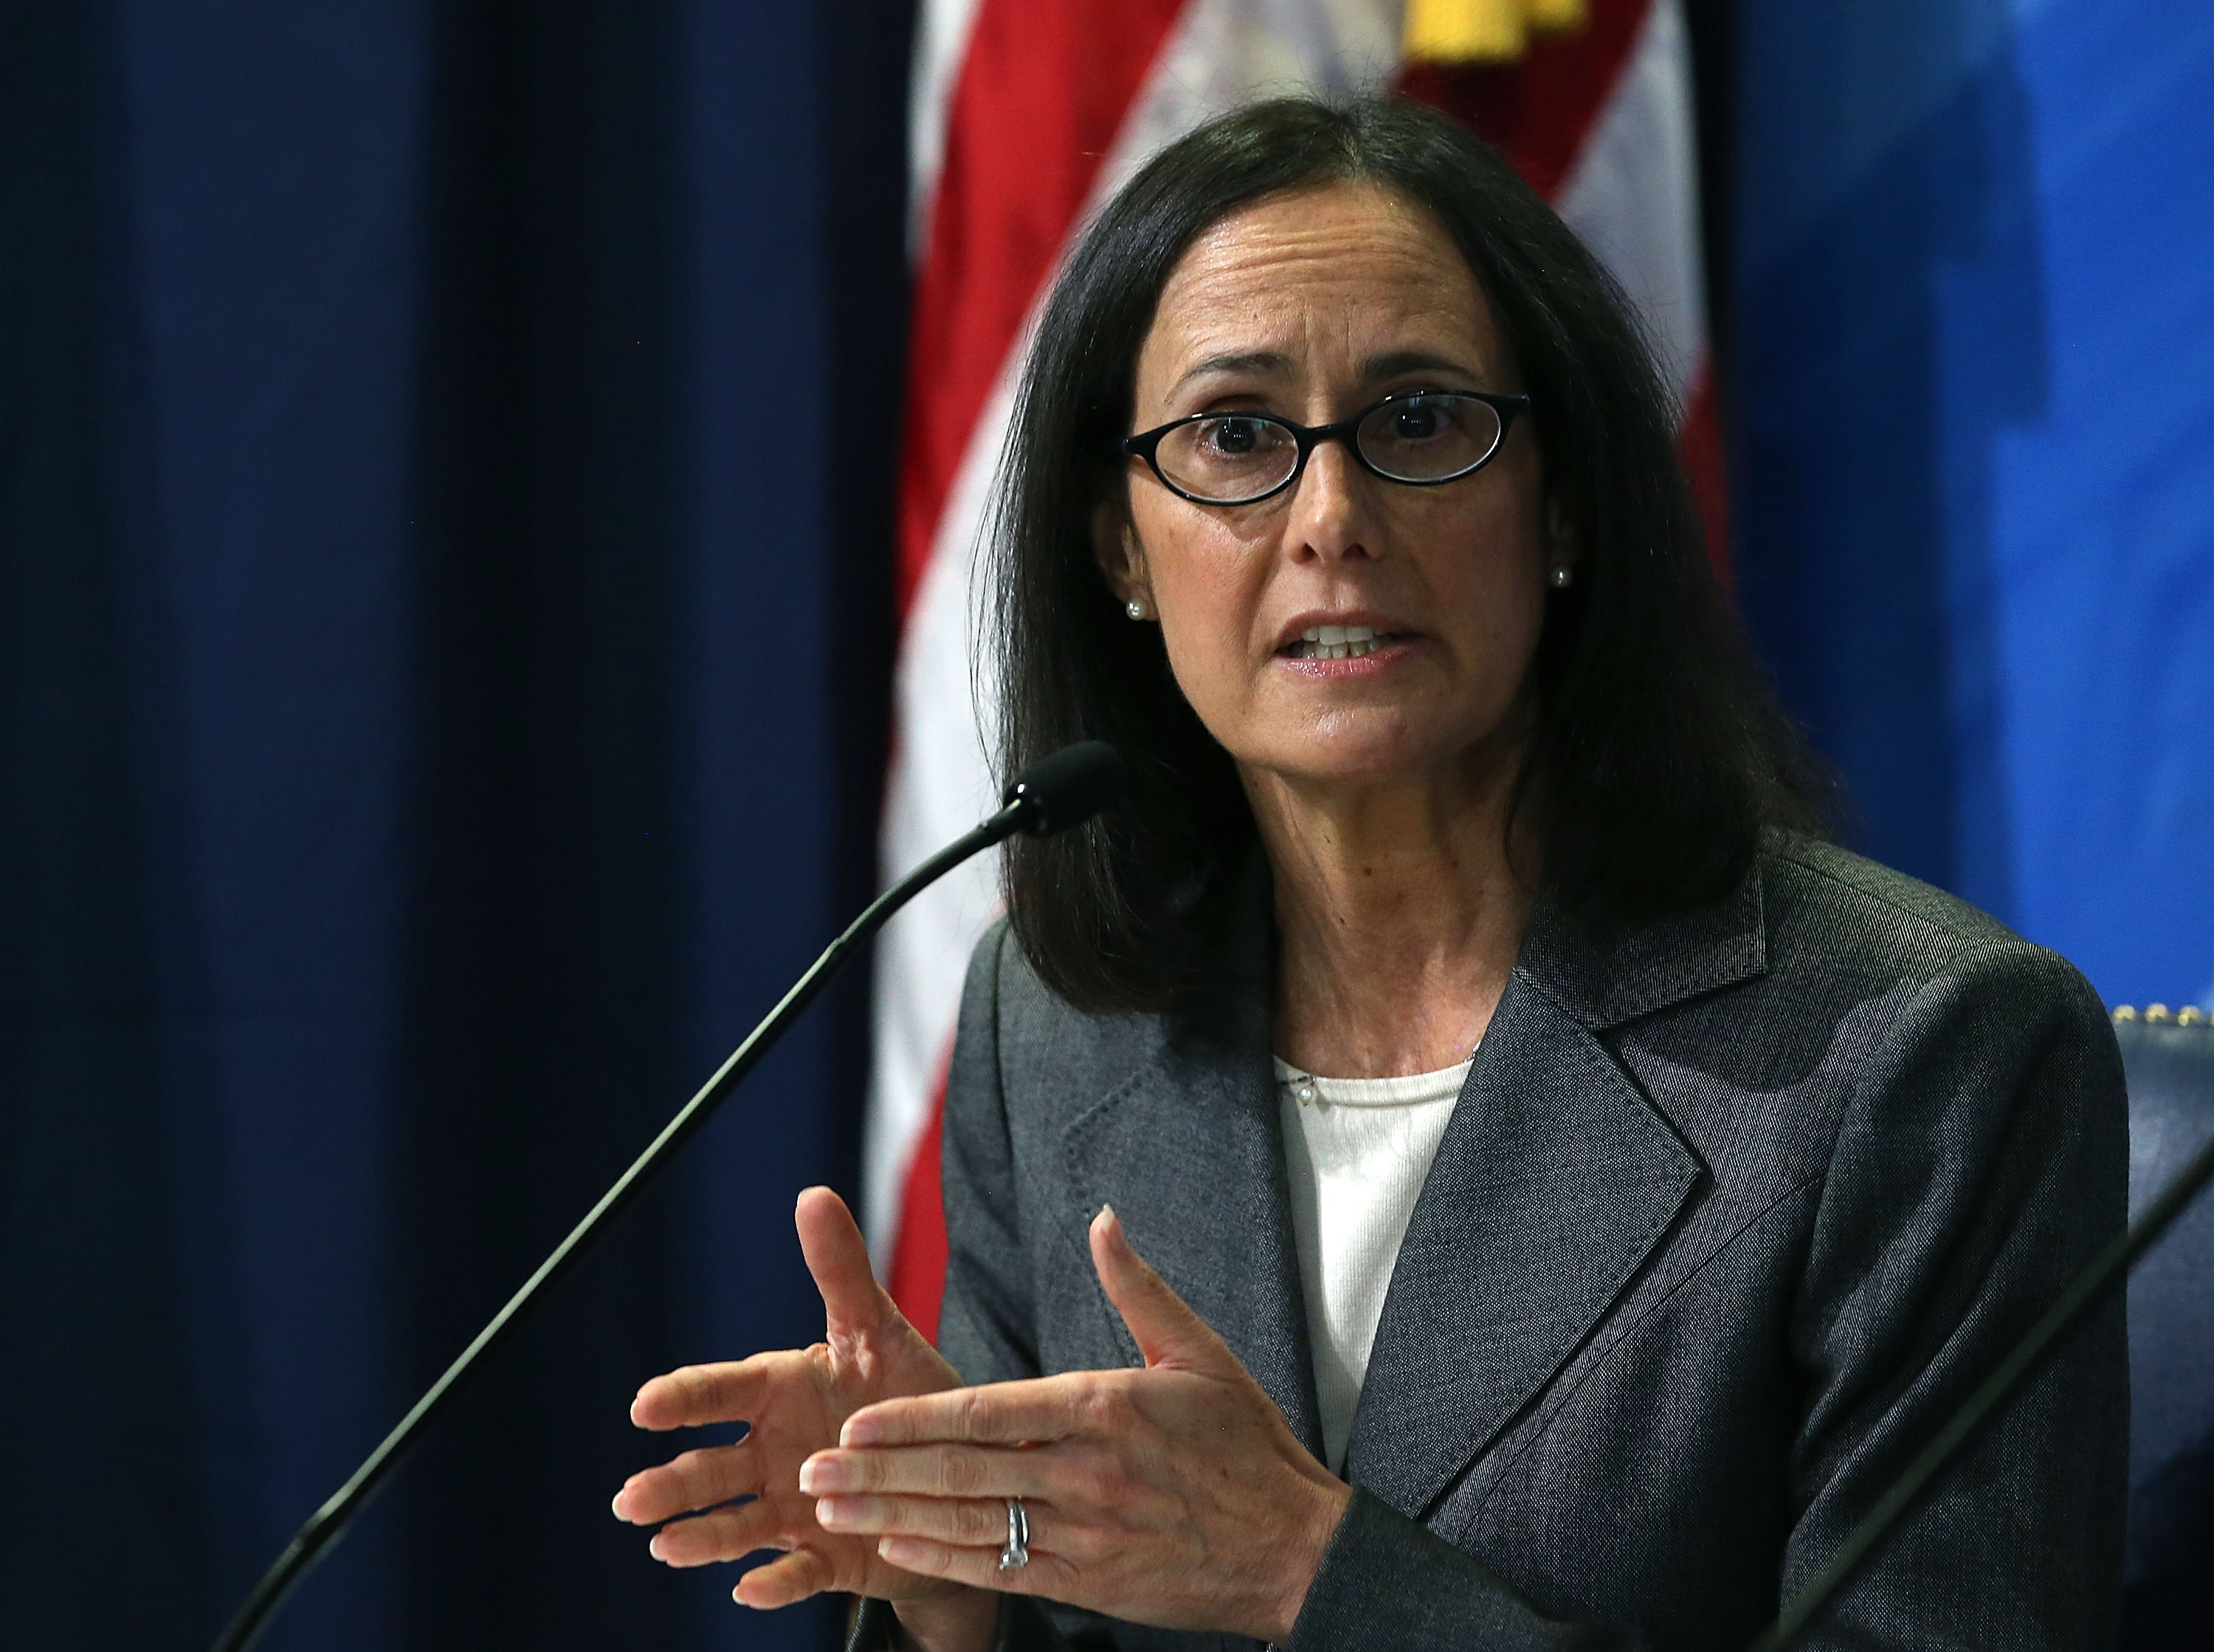 WASHINGTON, DC - NOVEMBER 04: Illinois Attorney General, Lisa Madigan speaks about a crackdown on deceptive and abusive debt collection practices during a news conference at the FTC headquarters November 4, 2015 in Washington, DC. (Photo by Mark Wilson/Getty Images)